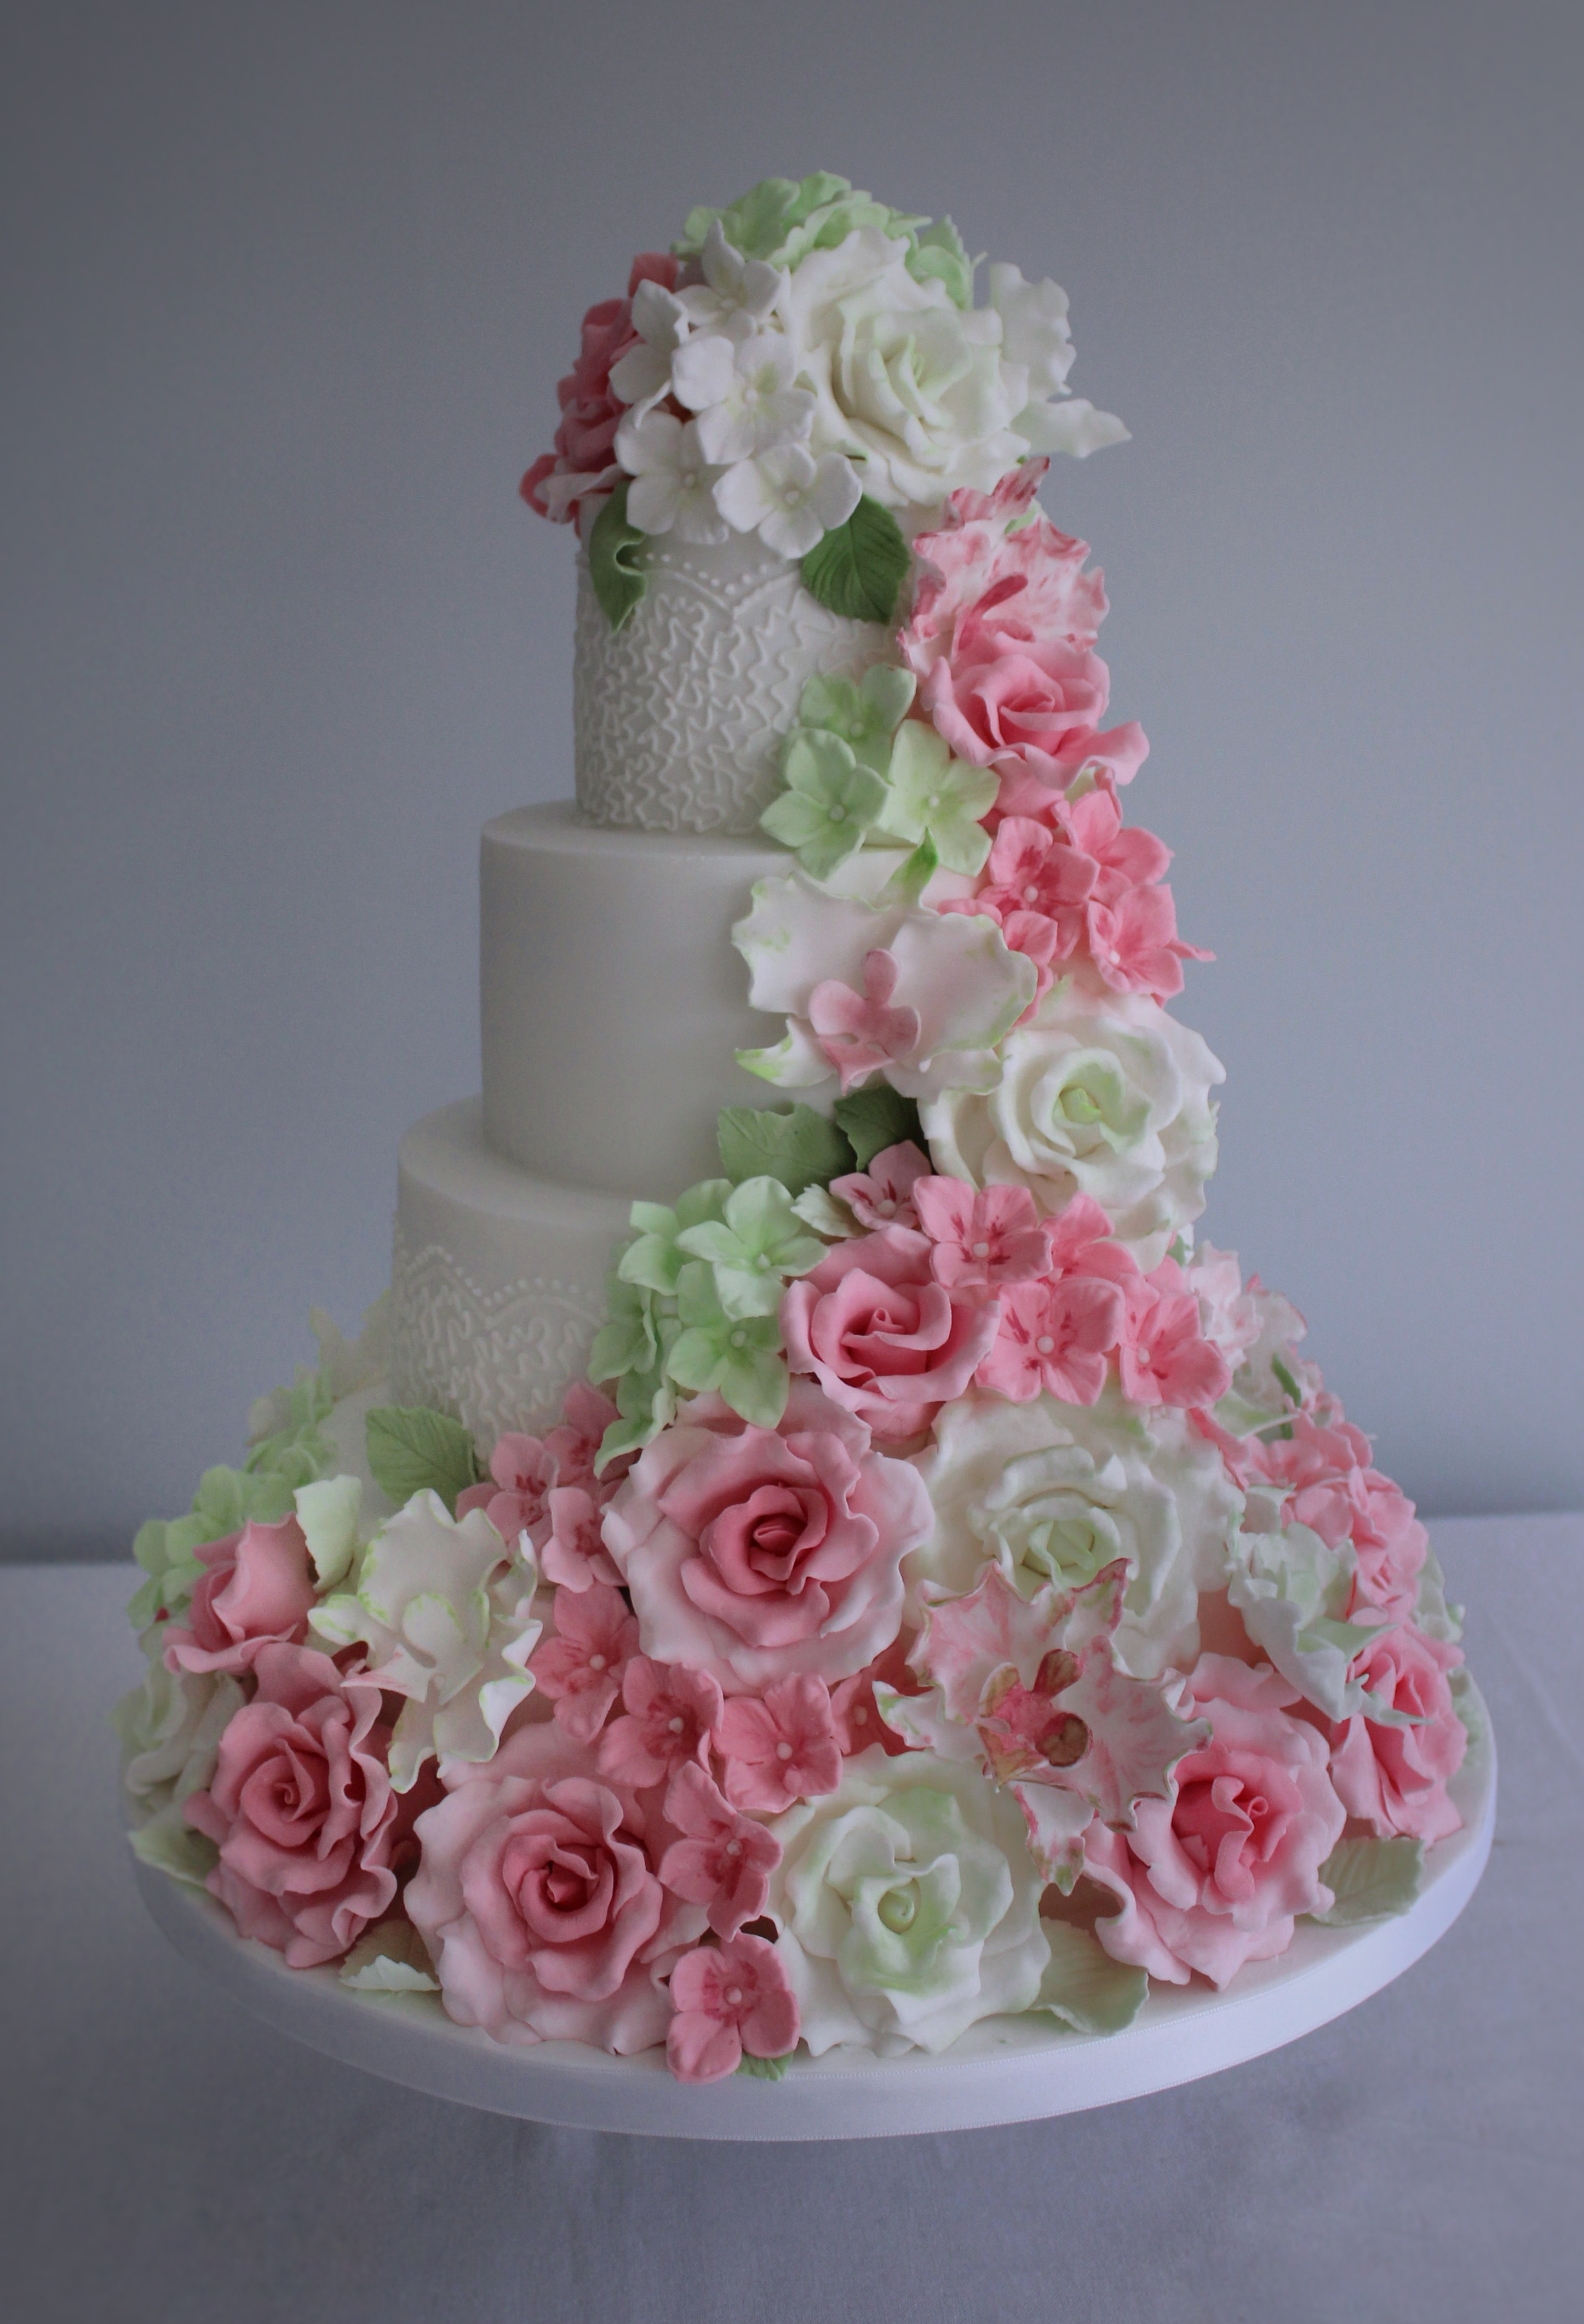 Keep The Tiers Plain Or Add Some Piped Detailing In Same Colour As Icing To Bring A Little Extra Design And Texture Cake